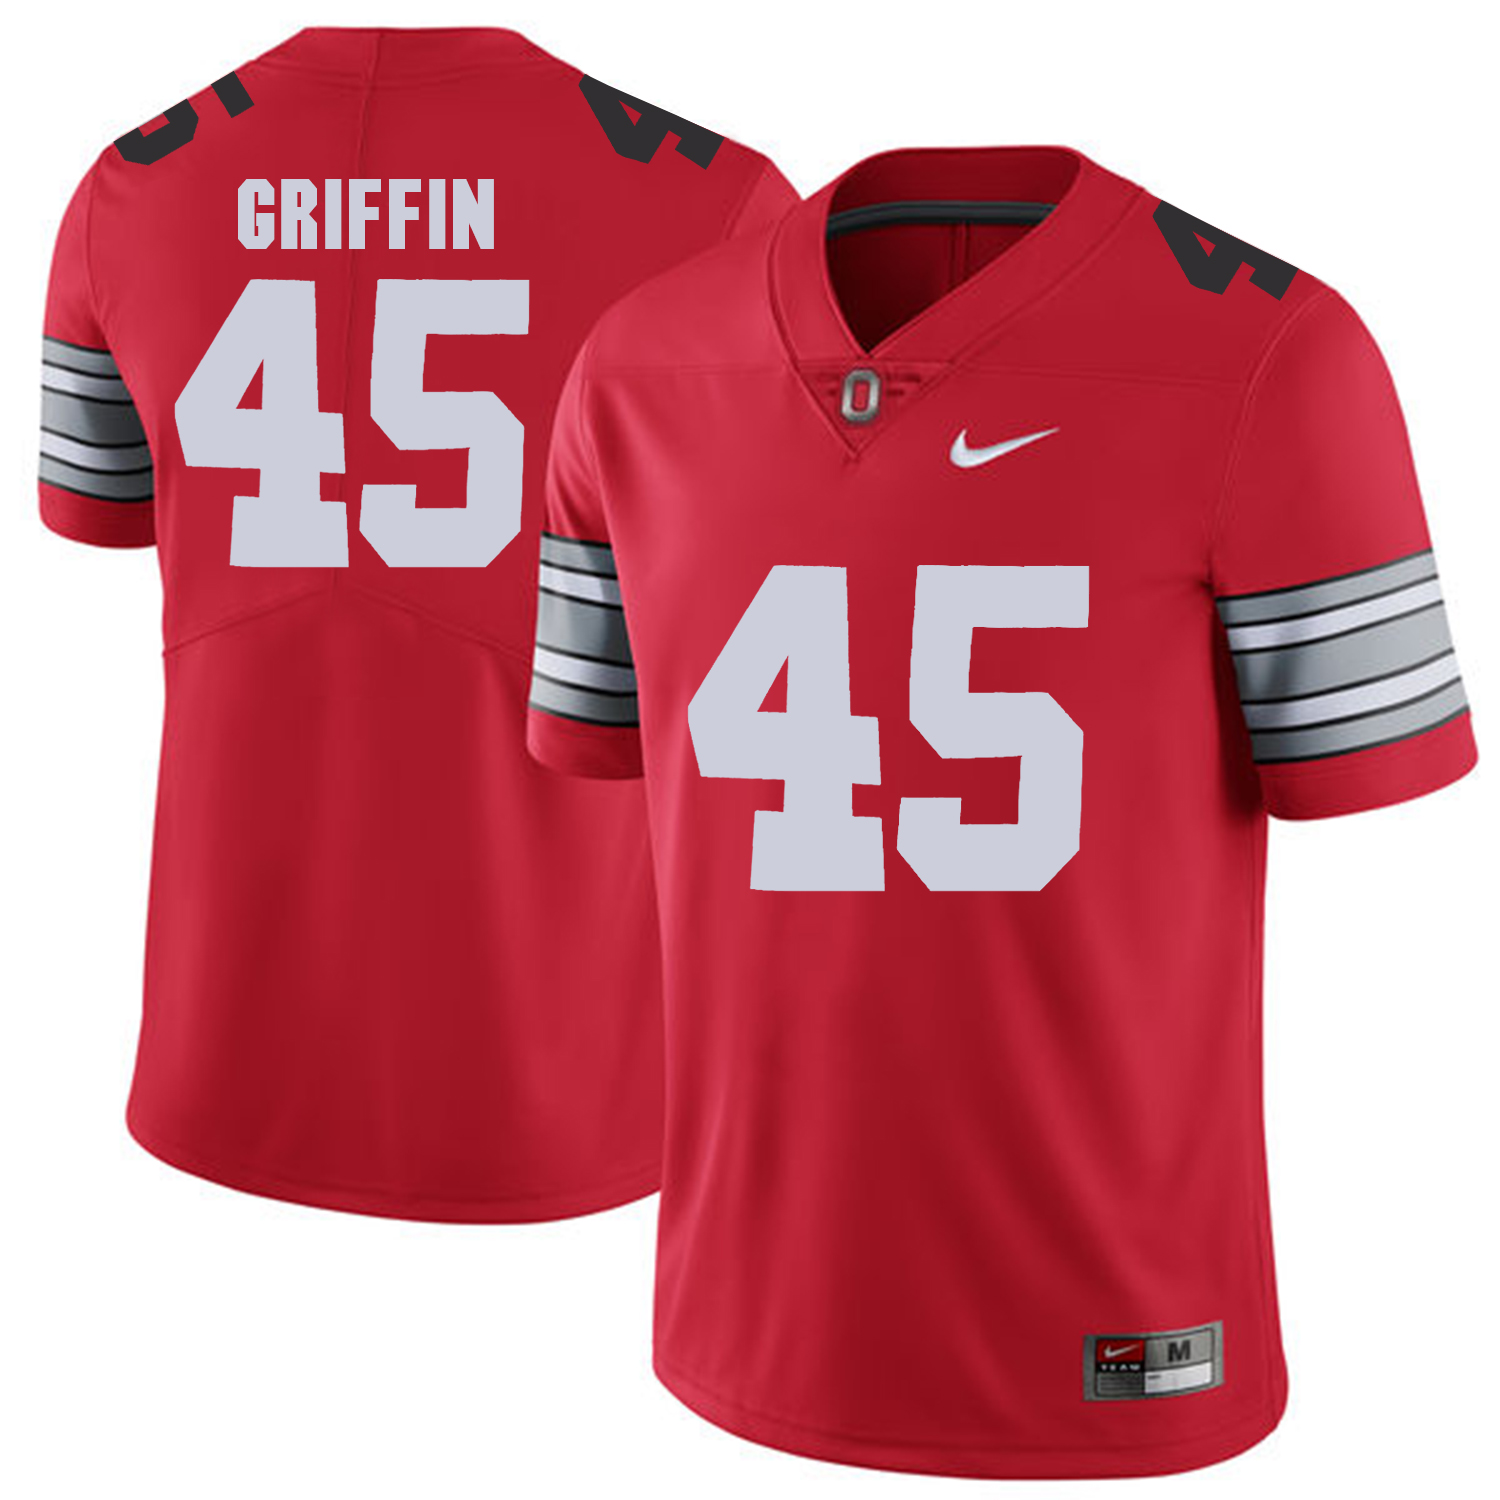 Men Ohio State 45 Griffin Red Customized NCAA Jerseys